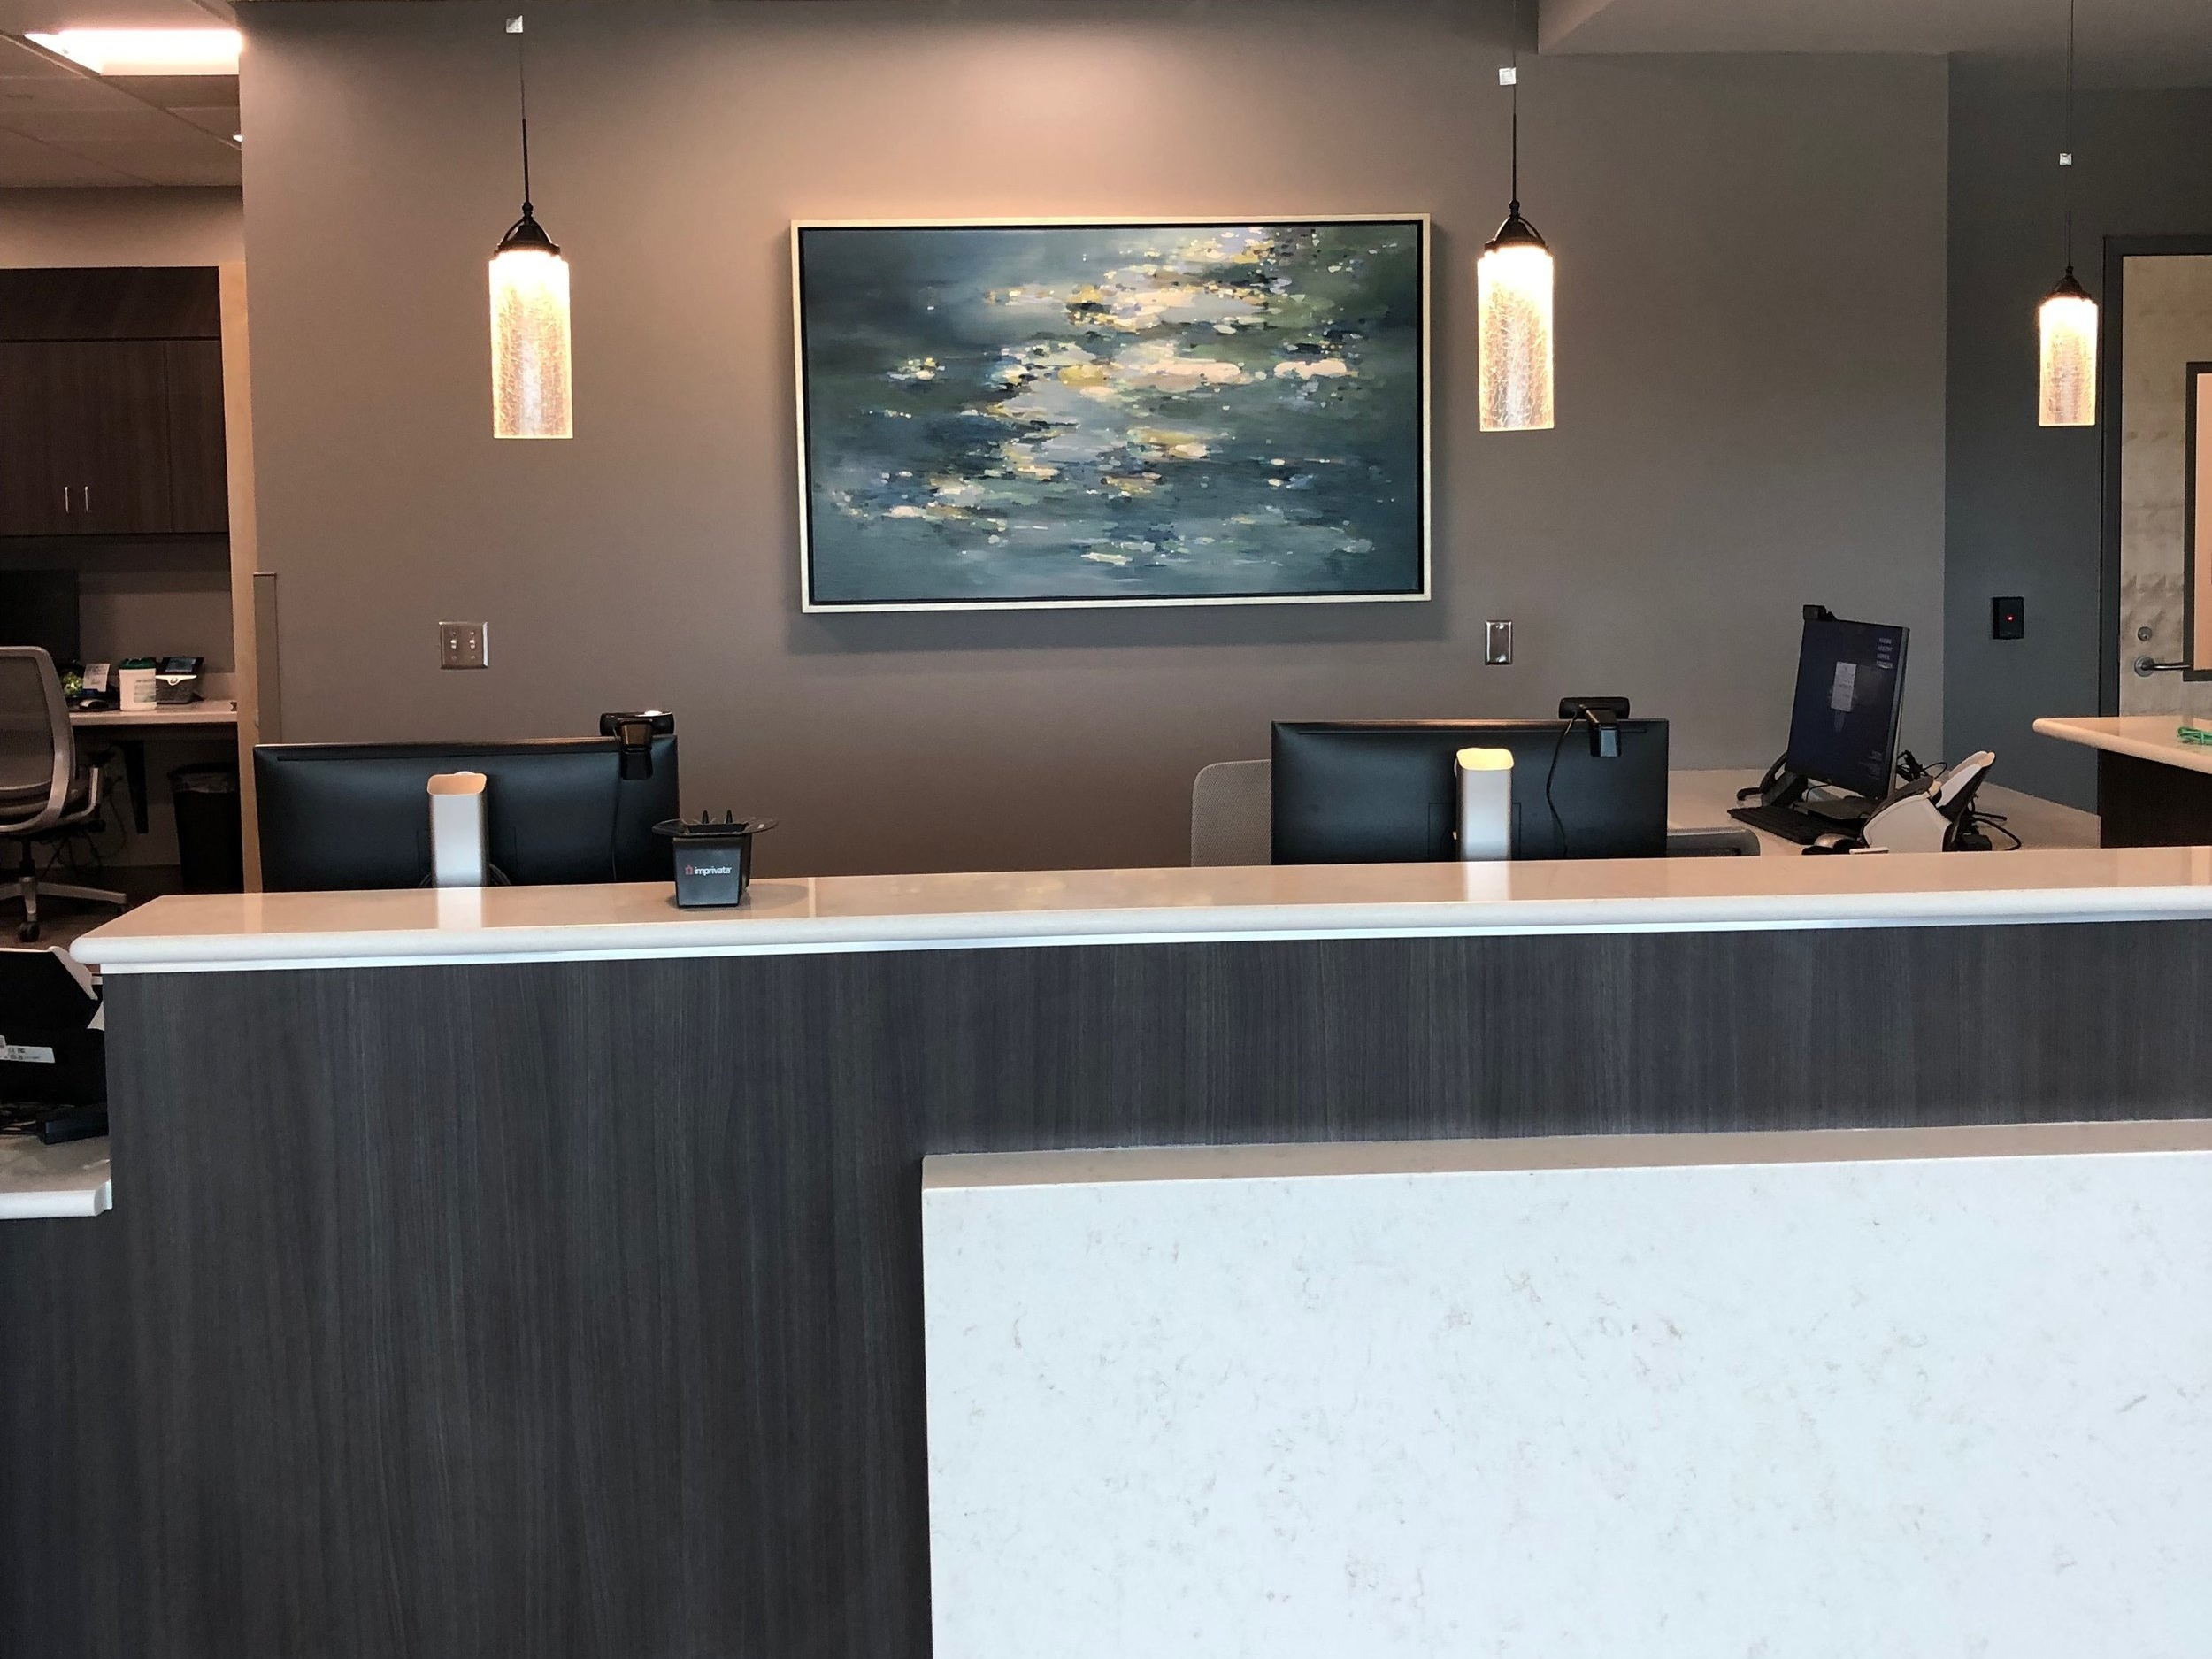 Beautifying Healthcare. - Often healthcare can feel cold and sterile, but if the right amount of warmth and intention are added, you have a beautiful and comfortable space.Spartanburg Regional Hospital CollectionSpartanburg, SC